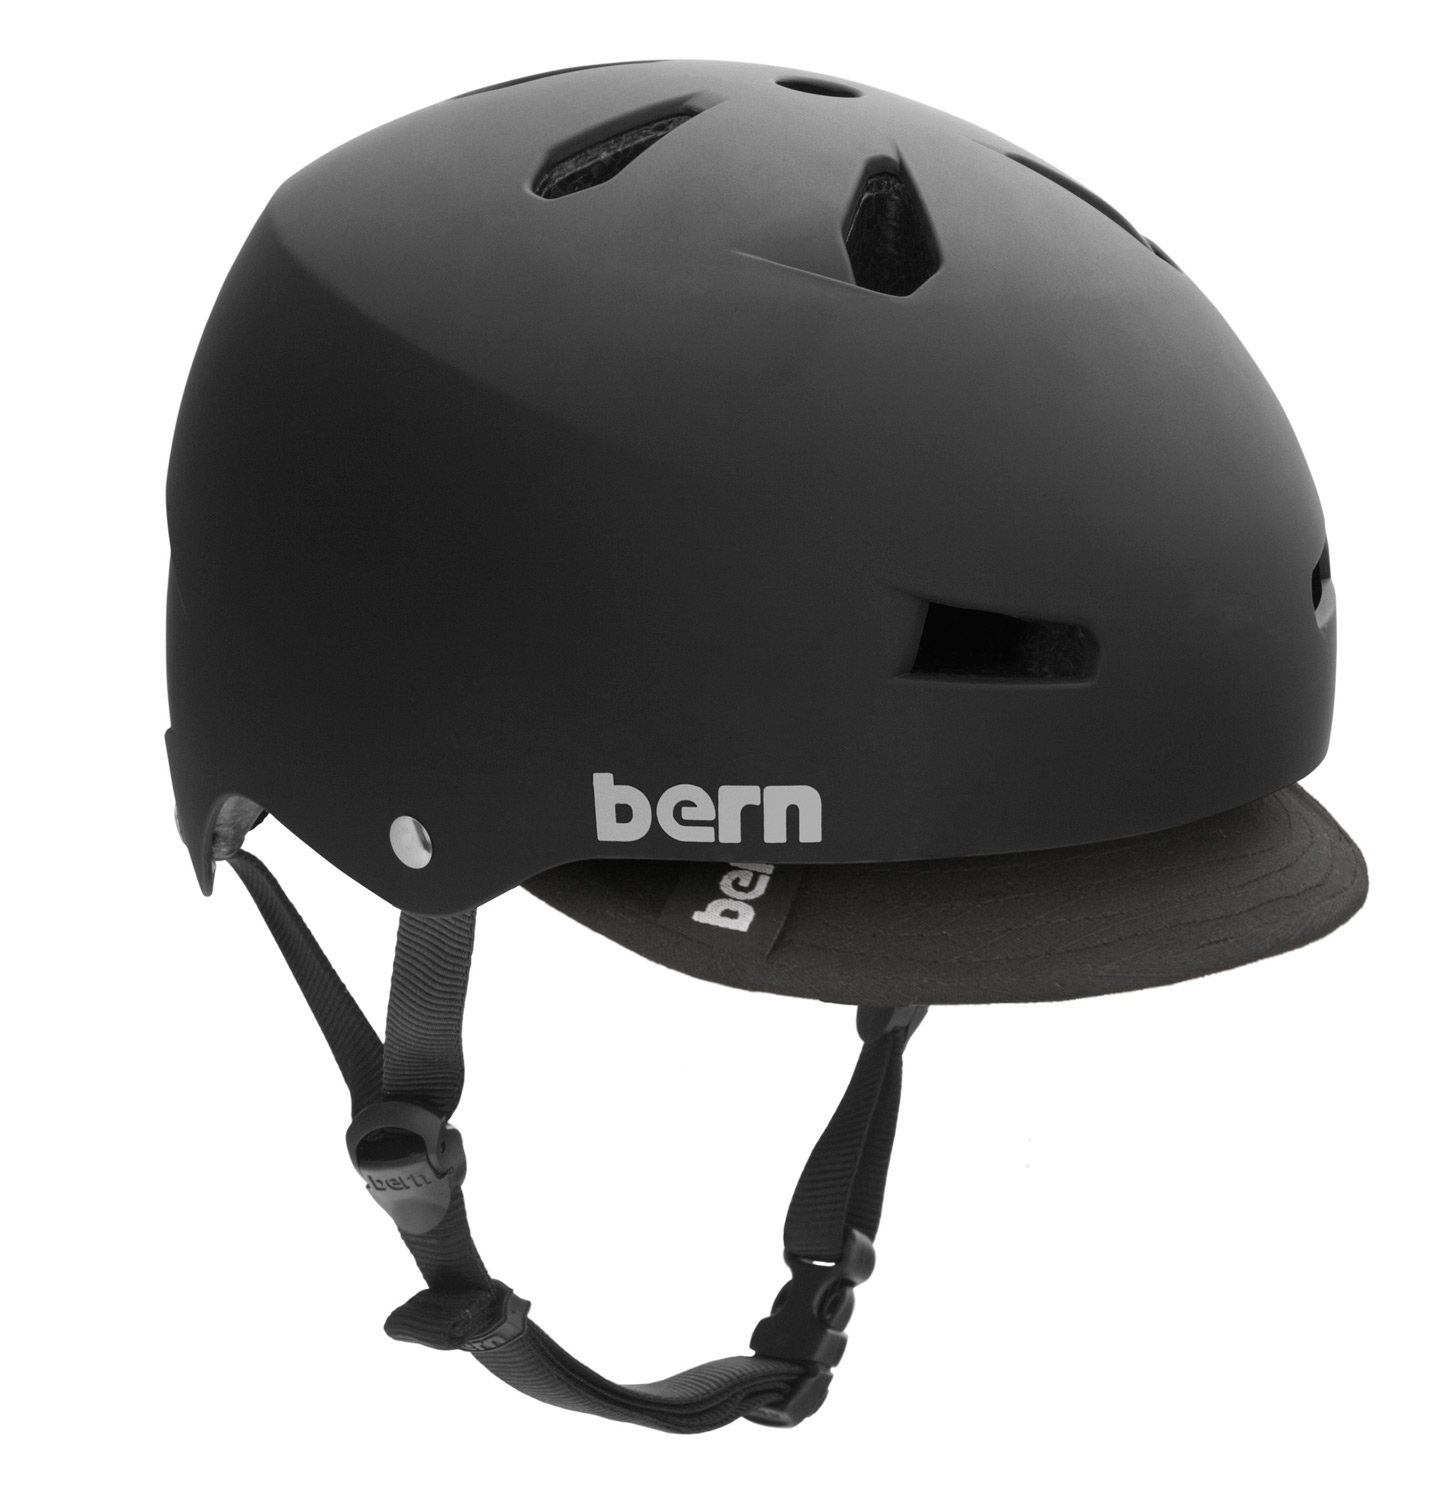 Ski The Macon bike helmet takes skate style to your everday commute. Core clean lines and durable construction team up with a removable visor for protection against the sun and inclement weather. Bern's All Season liner system allows you to use the Macon on your snowboard, skis or bike. EPS hard foam meets ASTM F 2040 and EN 1077B standards for snow and ski, CPSC and EN 1078 standards for bike and skate. - $35.95